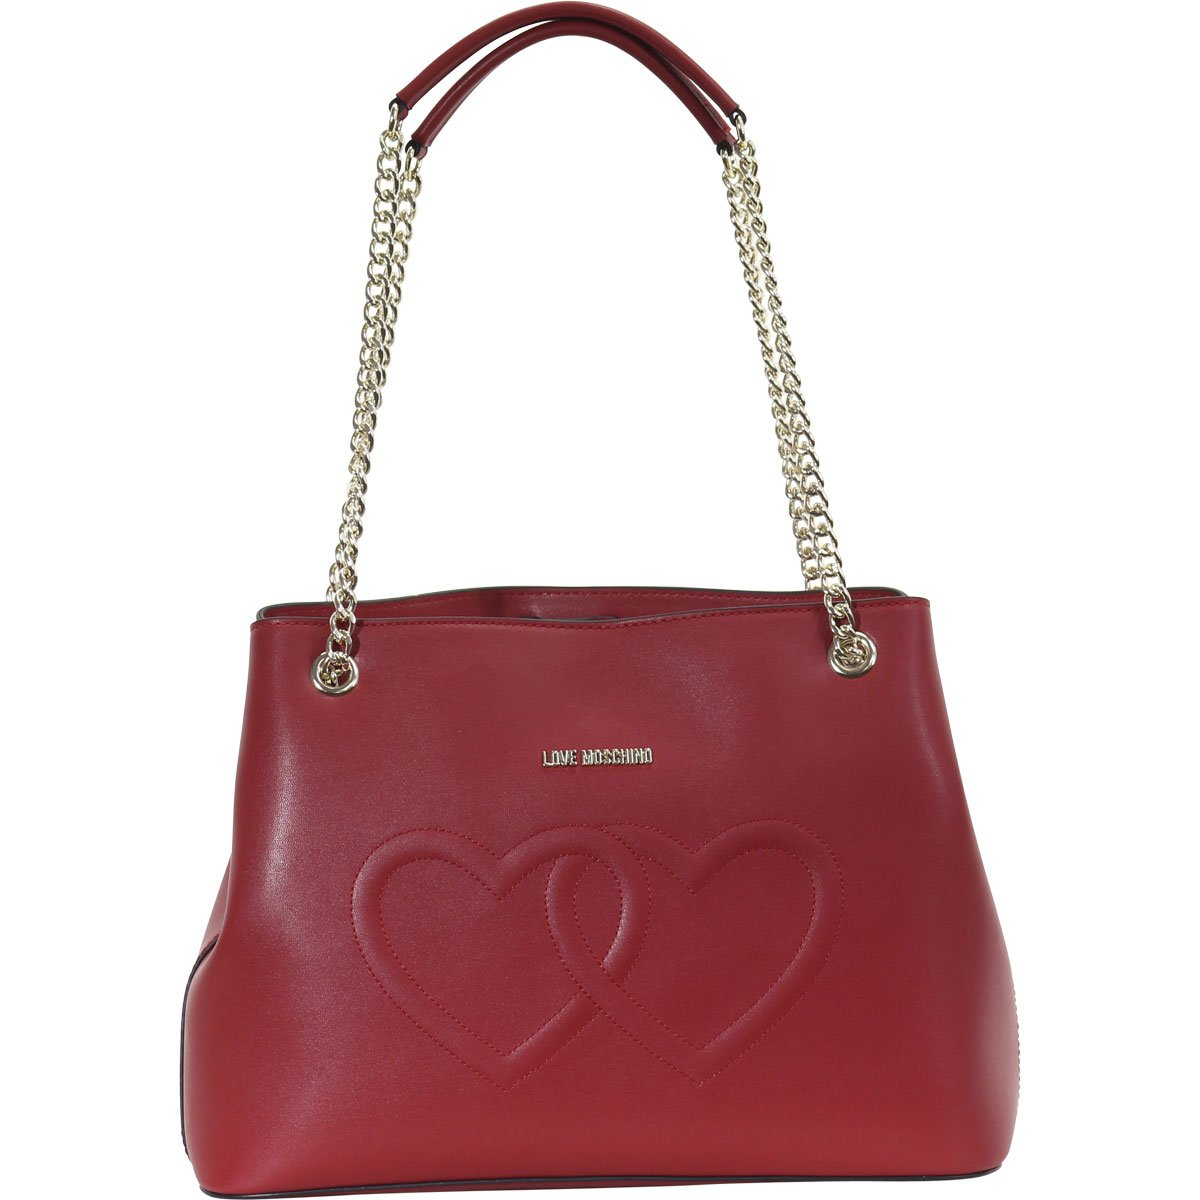 LOVE Moschino Women's Embossed Heart Shoulder Bag Red One Size